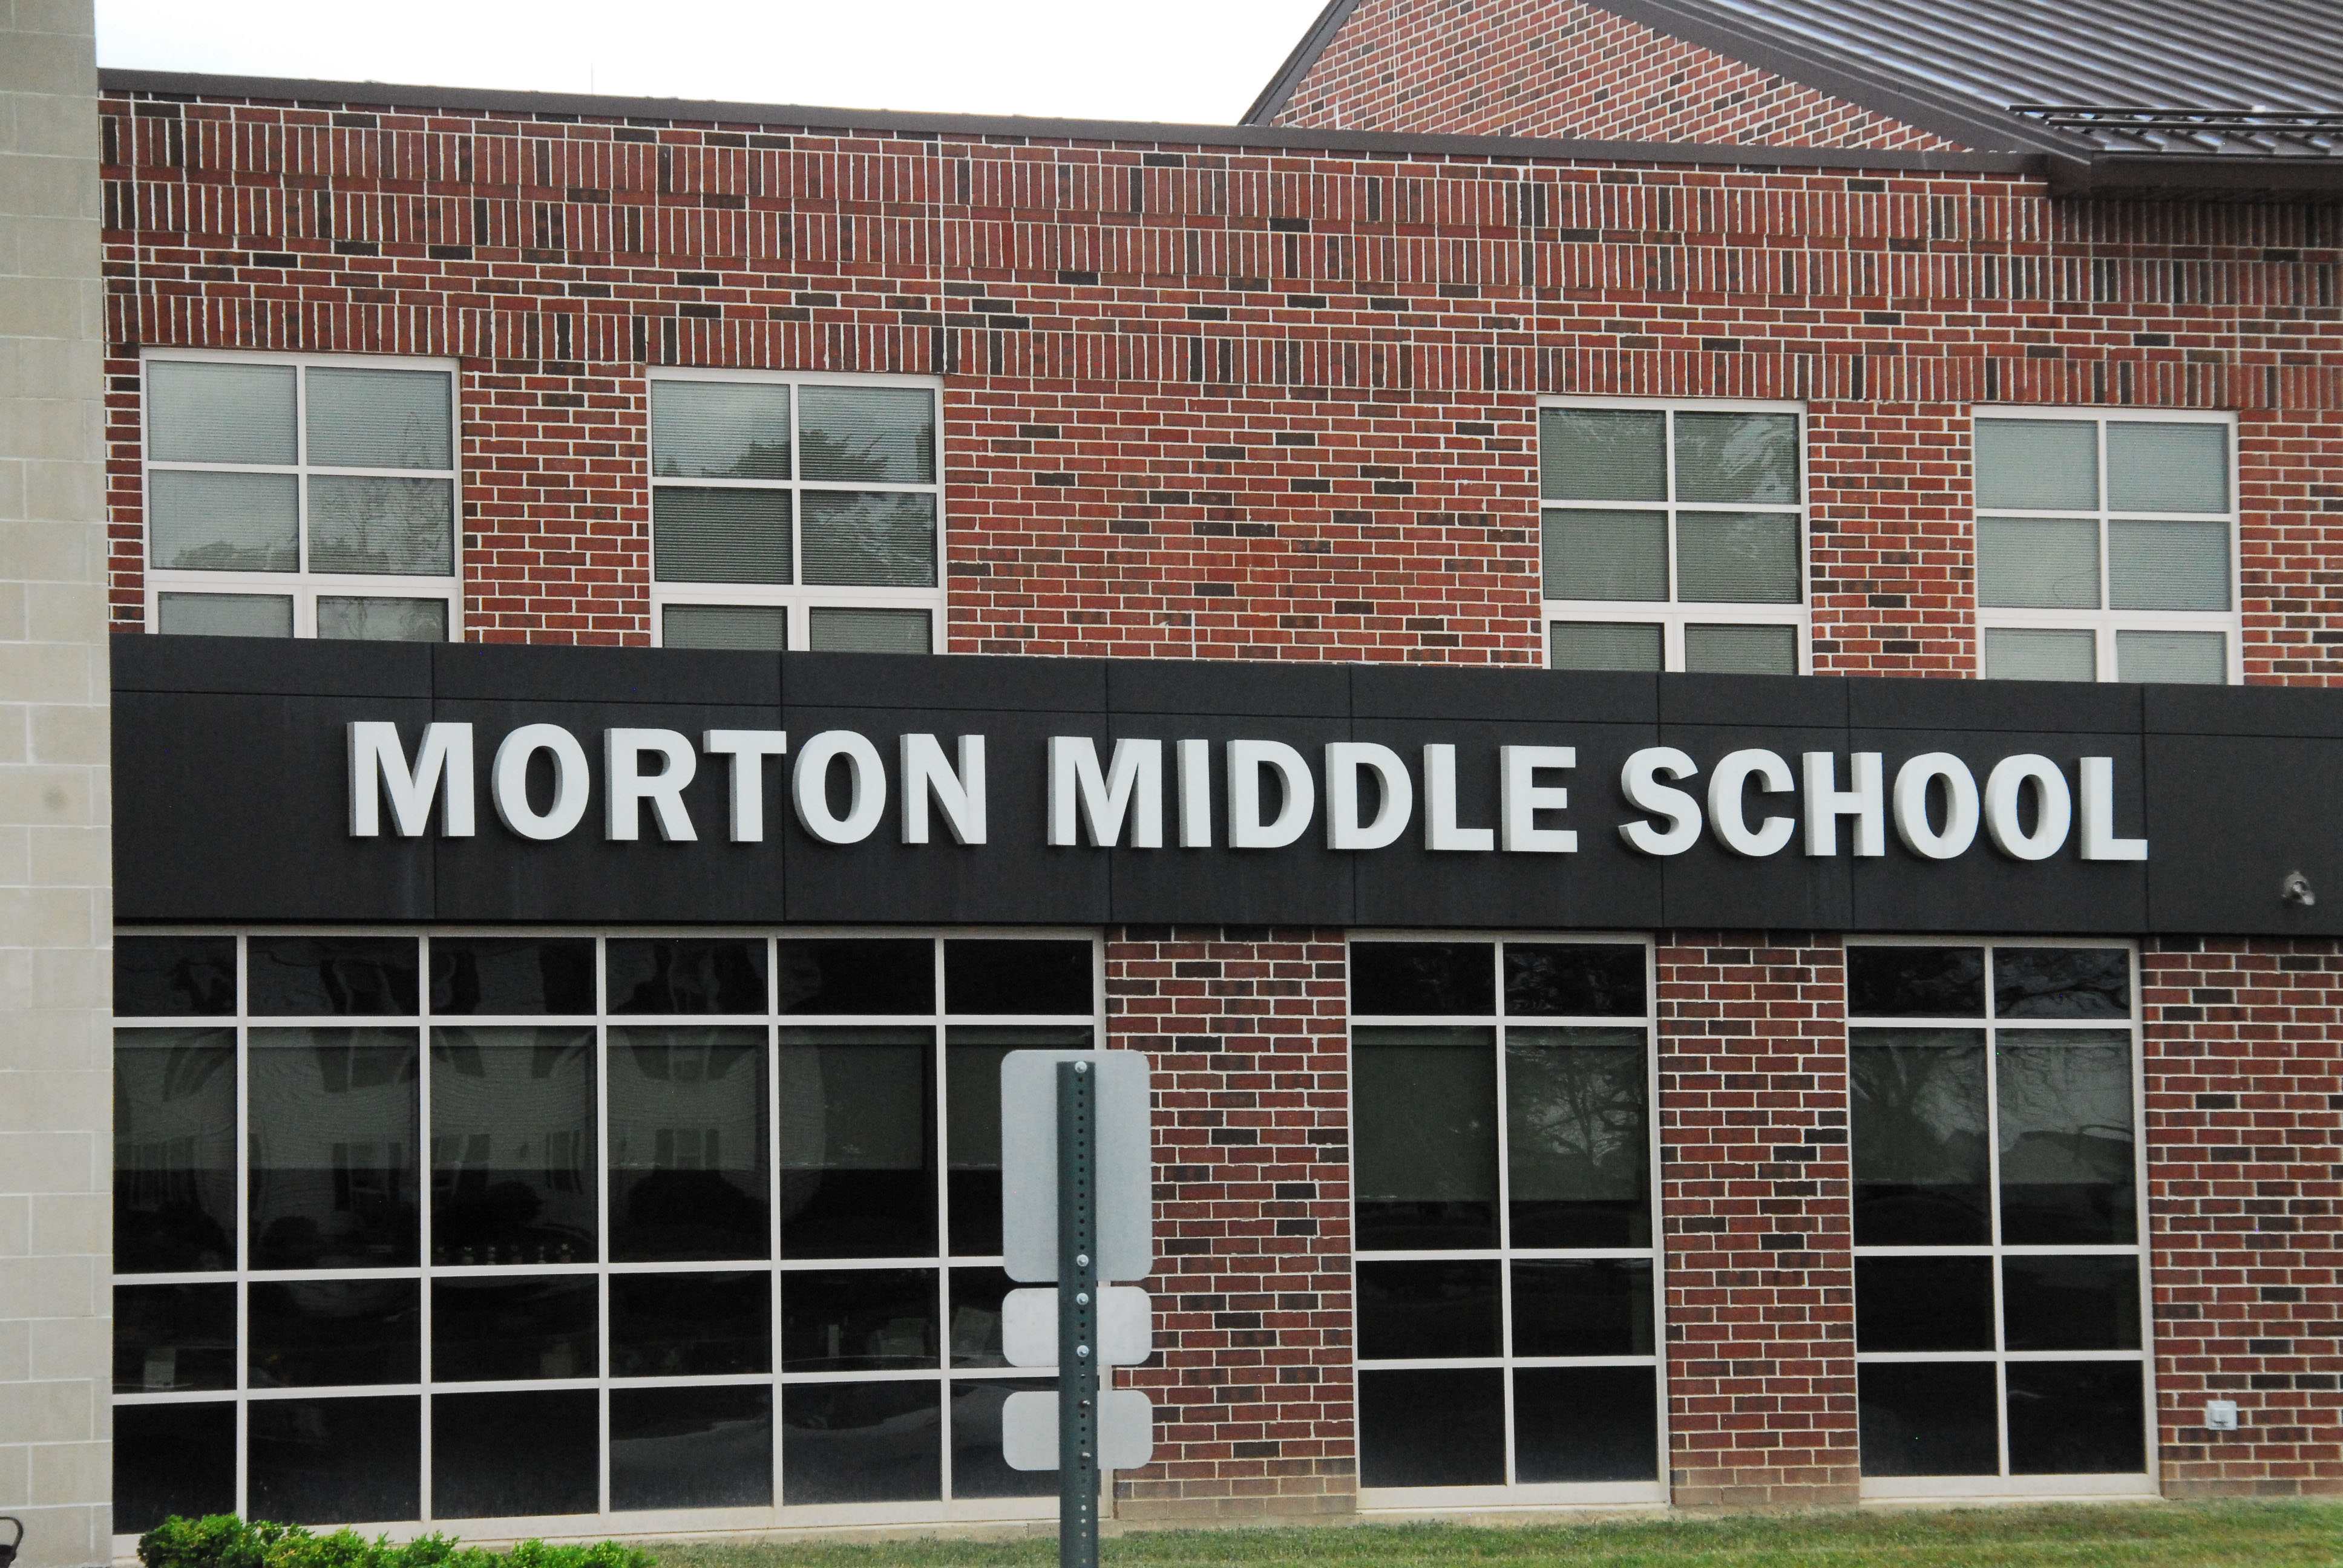 Morton's Advisory Program Gets State-Wide Attention